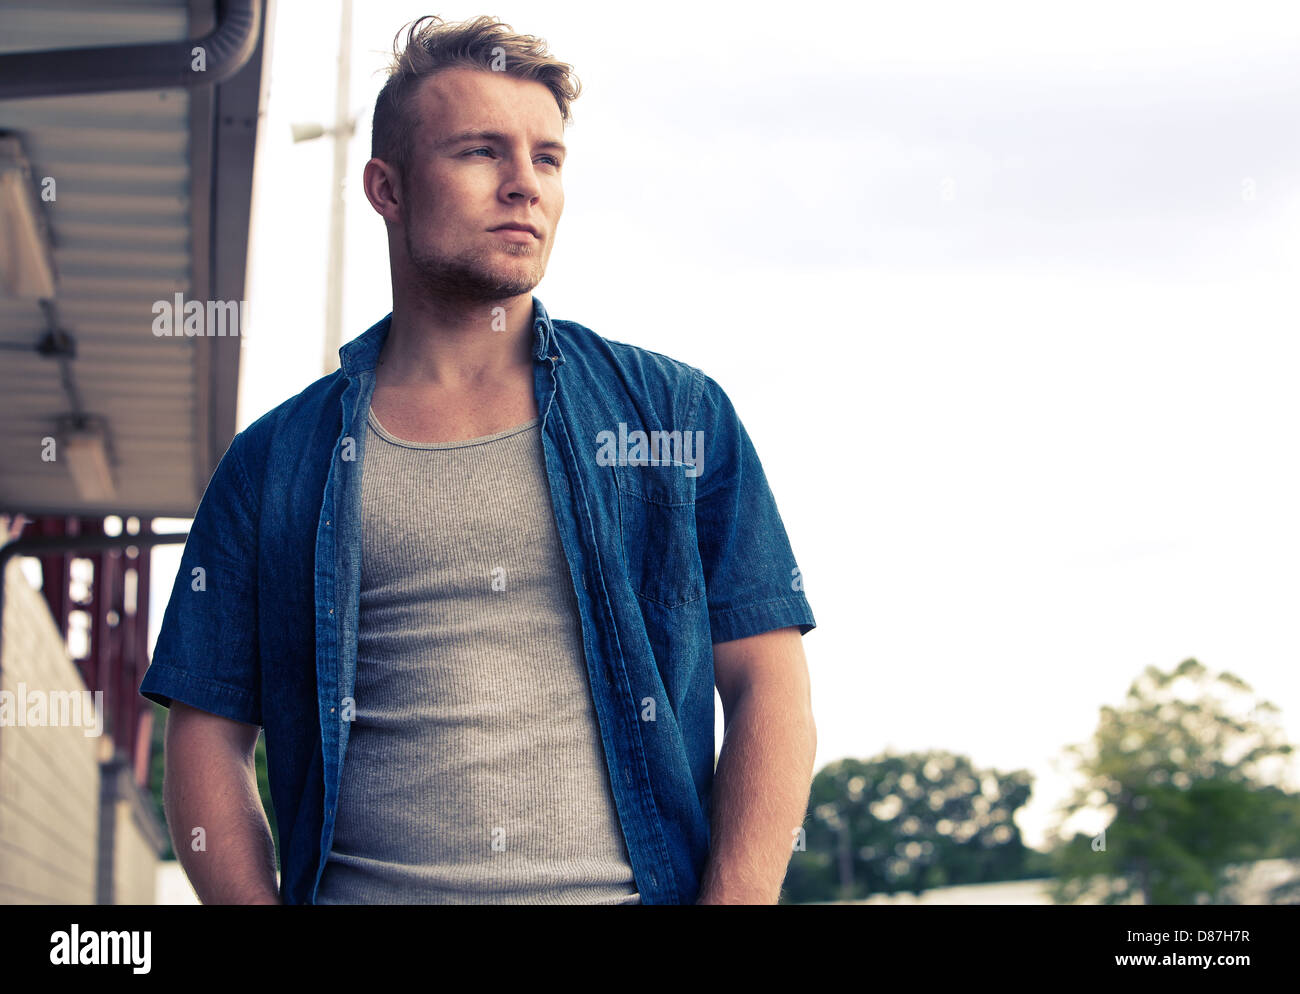 Man standing outside with blue shirt against sky - Stock Image